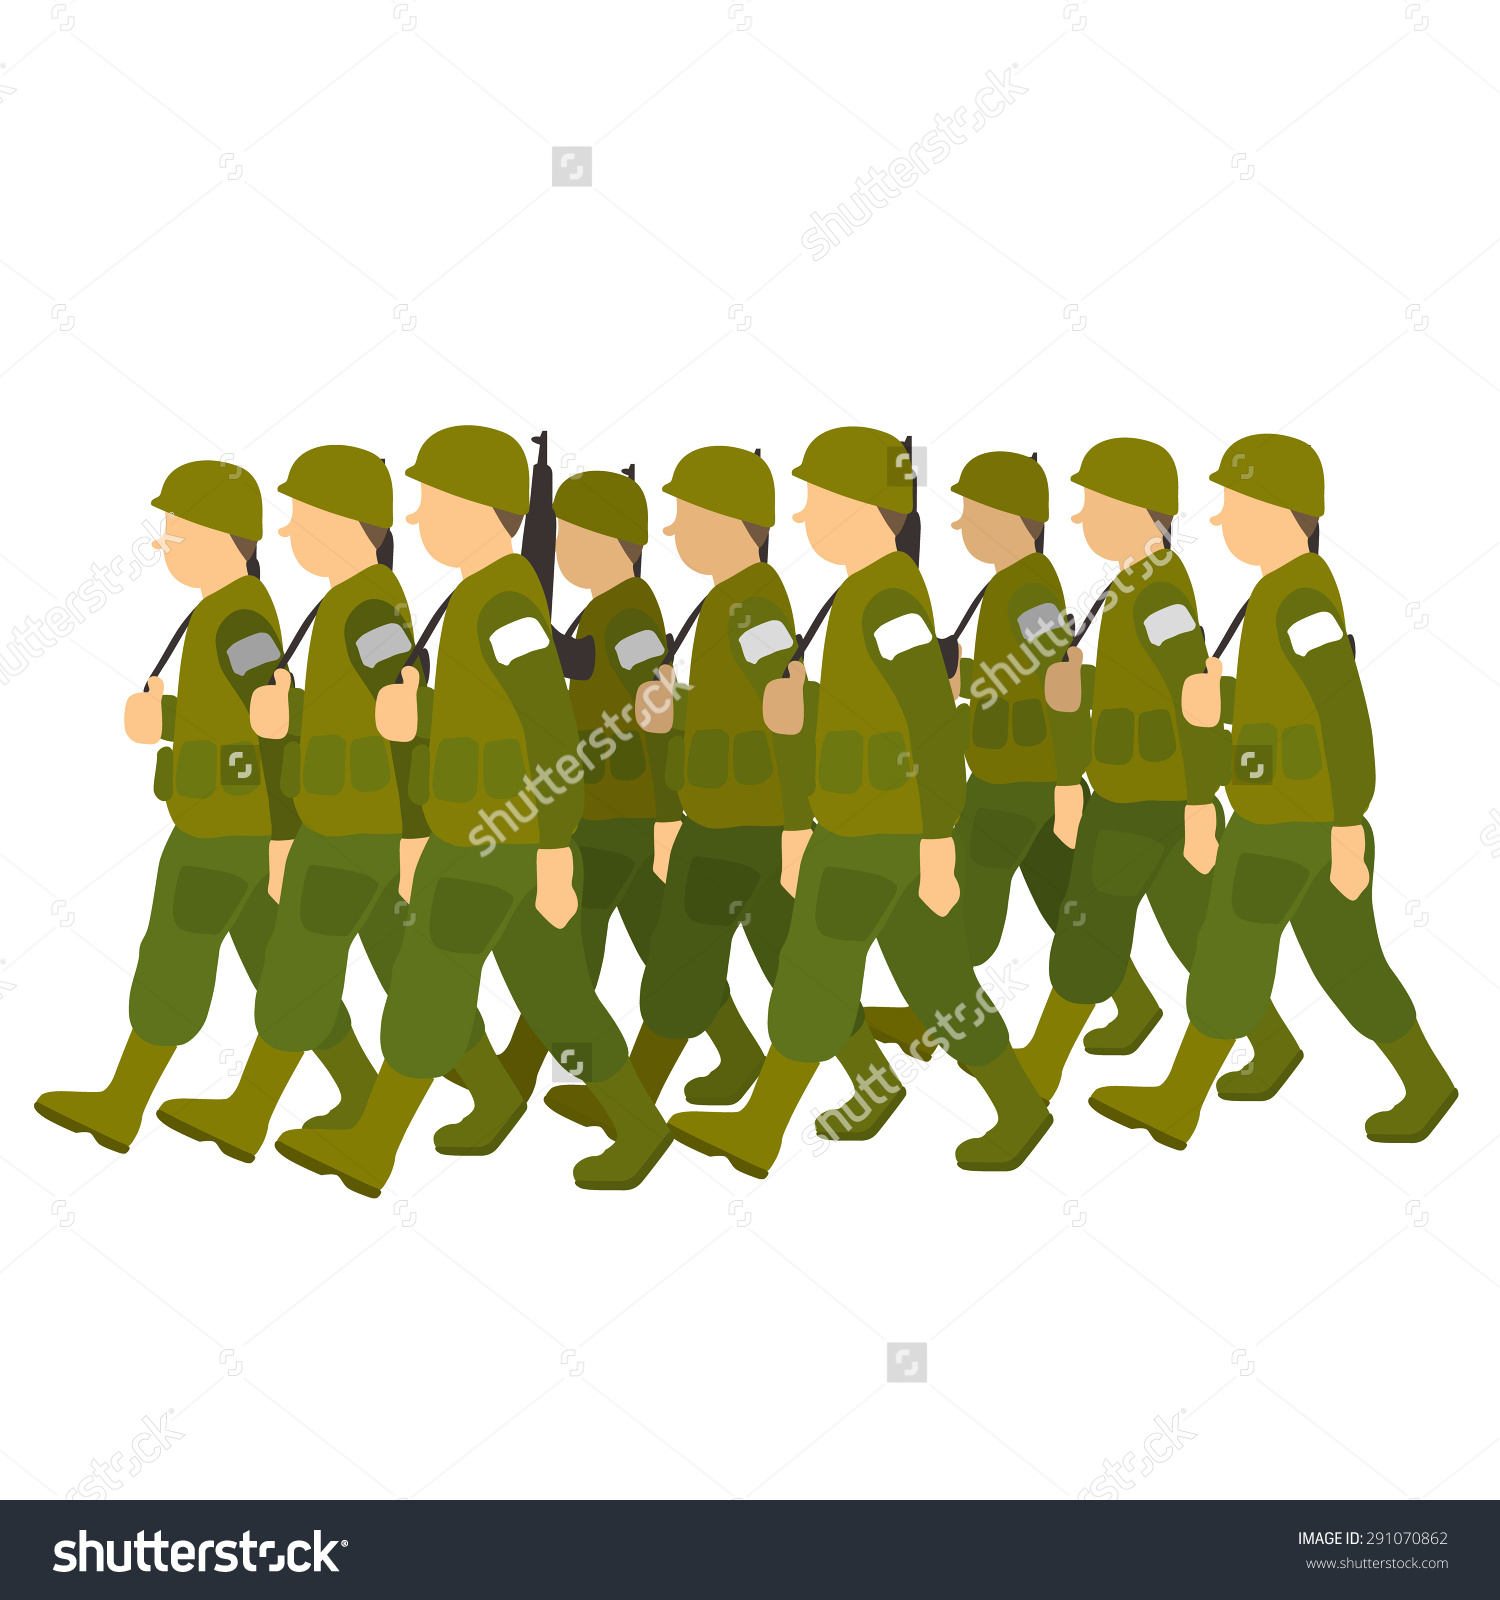 Soldiers Green Uniform Marching Past Military Stock Vector.